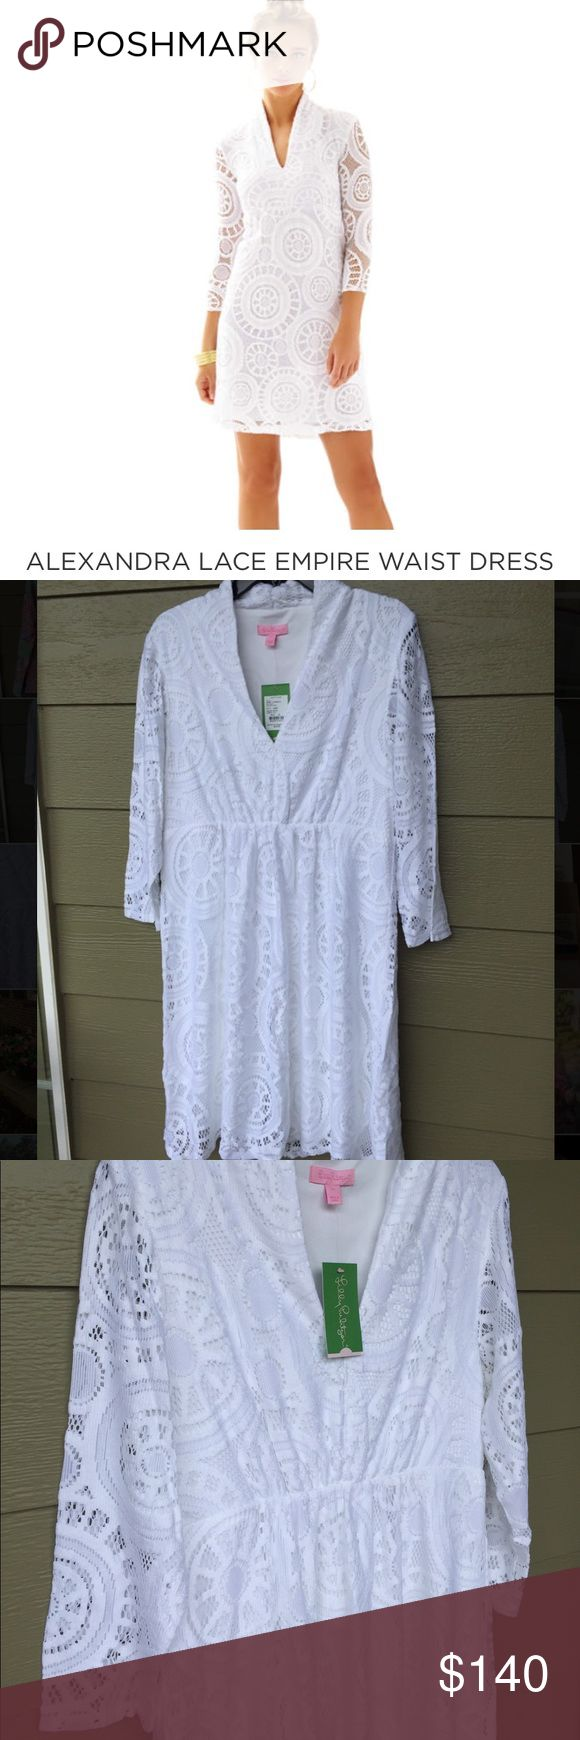 "Lilly Pulitzer Alexandra Empire waist dress XL NWT. Beautiful resort white lace dress. Women's size xlarge. Very flattering style. Lace Dress With 3/4 sheer lace Sleeves, Elasticized Empire Waist, And V-Neckline. 20"" From Natural Waist to Hem. Imported. Lilly Pulitzer Dresses"